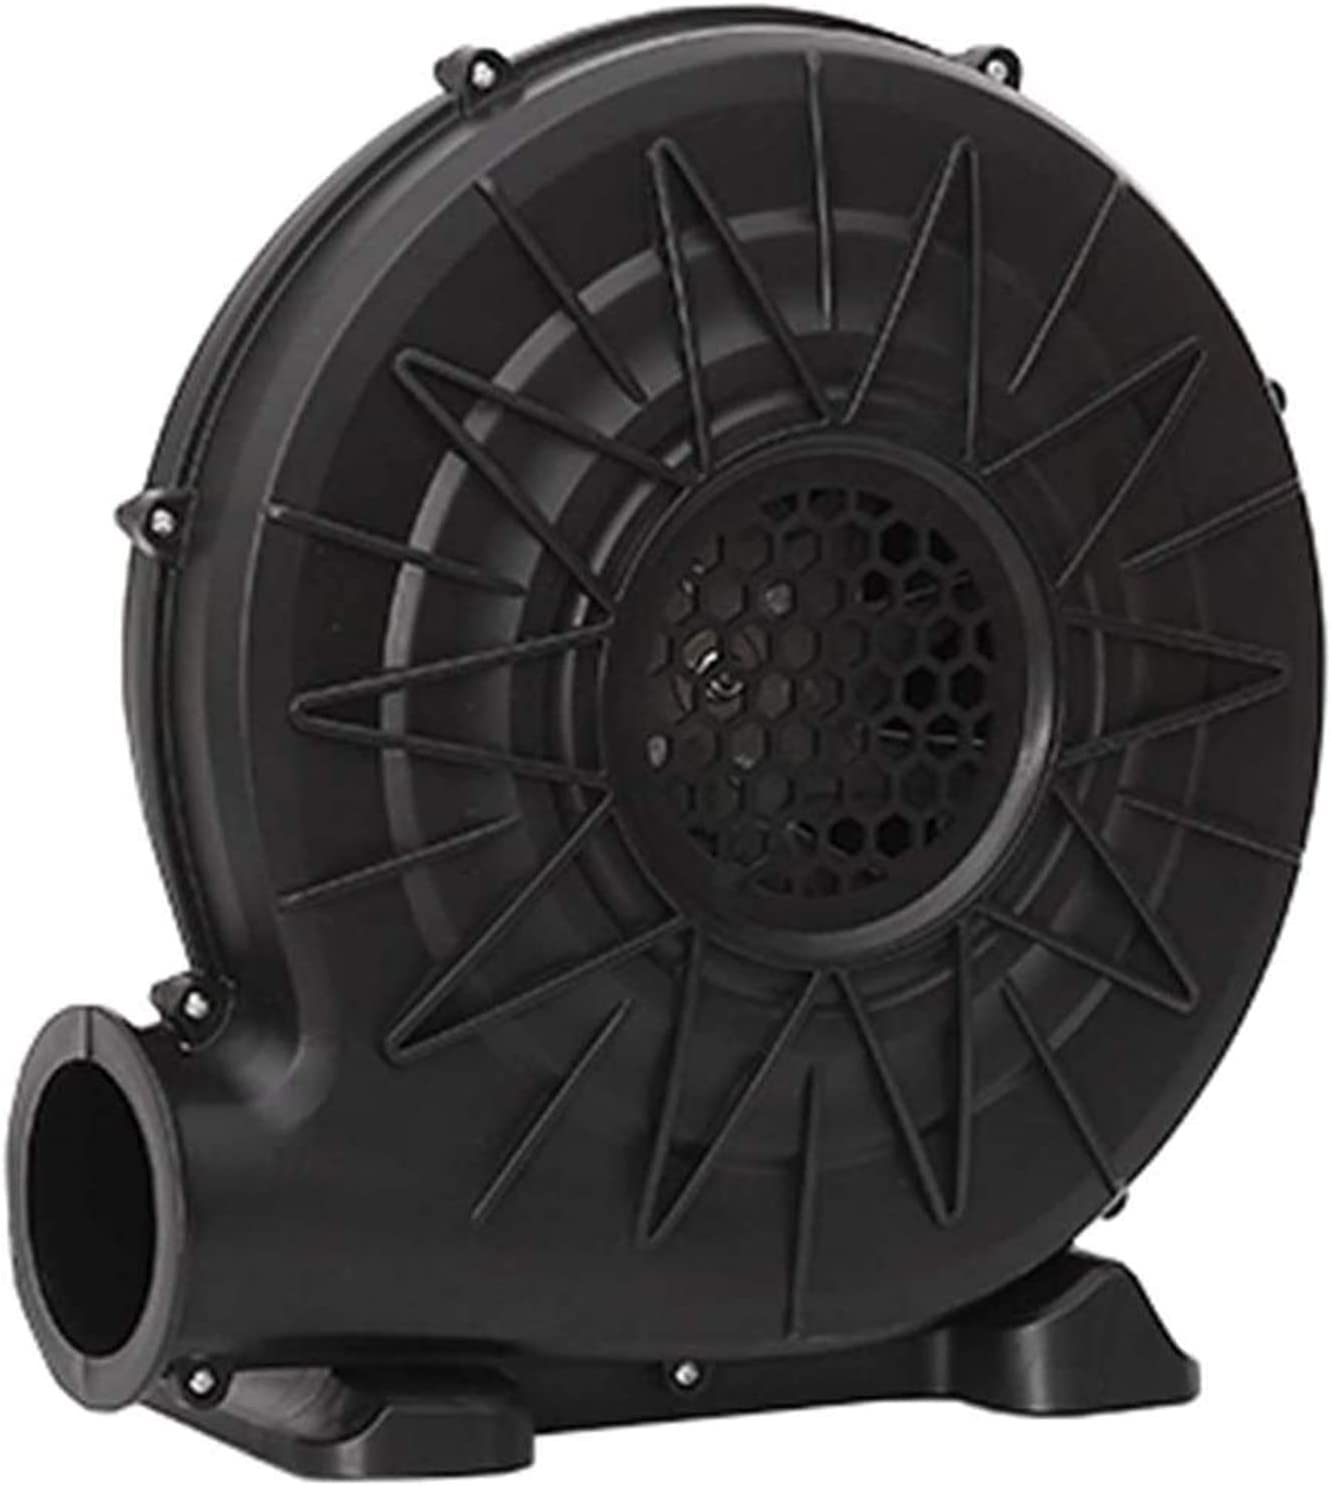 NWDD 550W Outlet SALE Inflatable Blower Max 62% OFF Boun Fan Commercial Pump